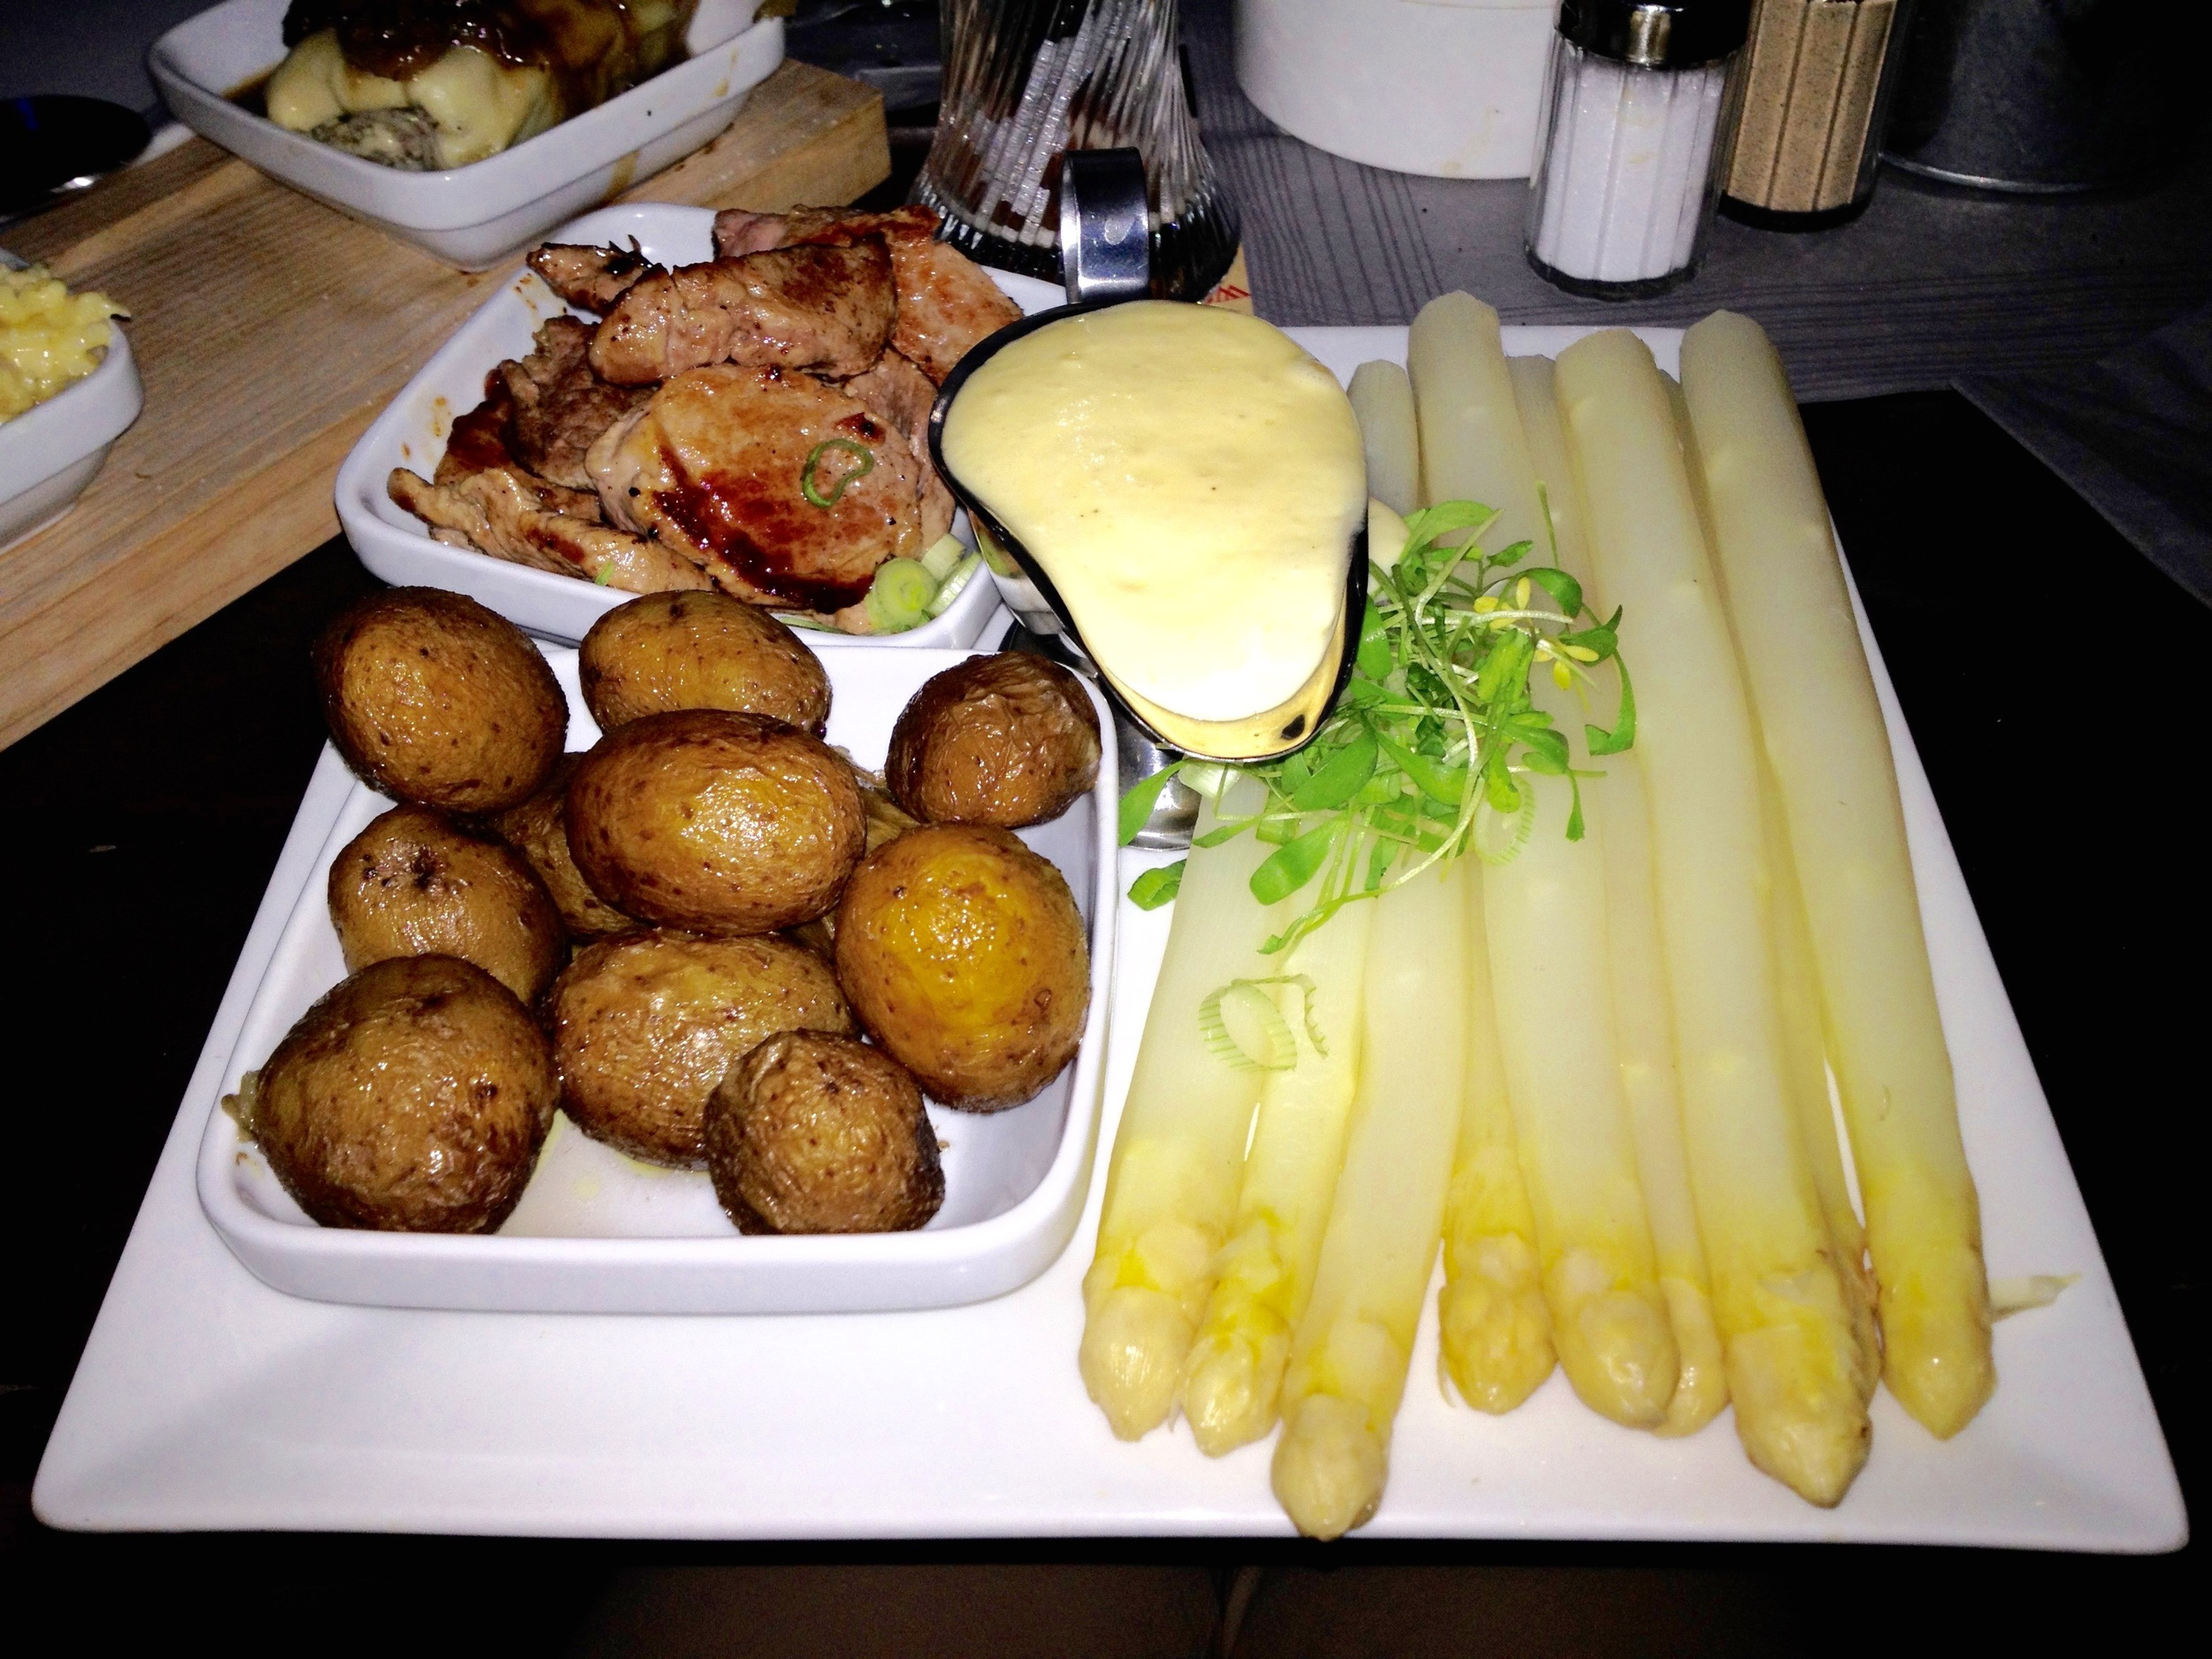 My special from the  Spargel  menu: white asparagus with pan-fried pork medallions, new potatoes, and hollandaise sauce